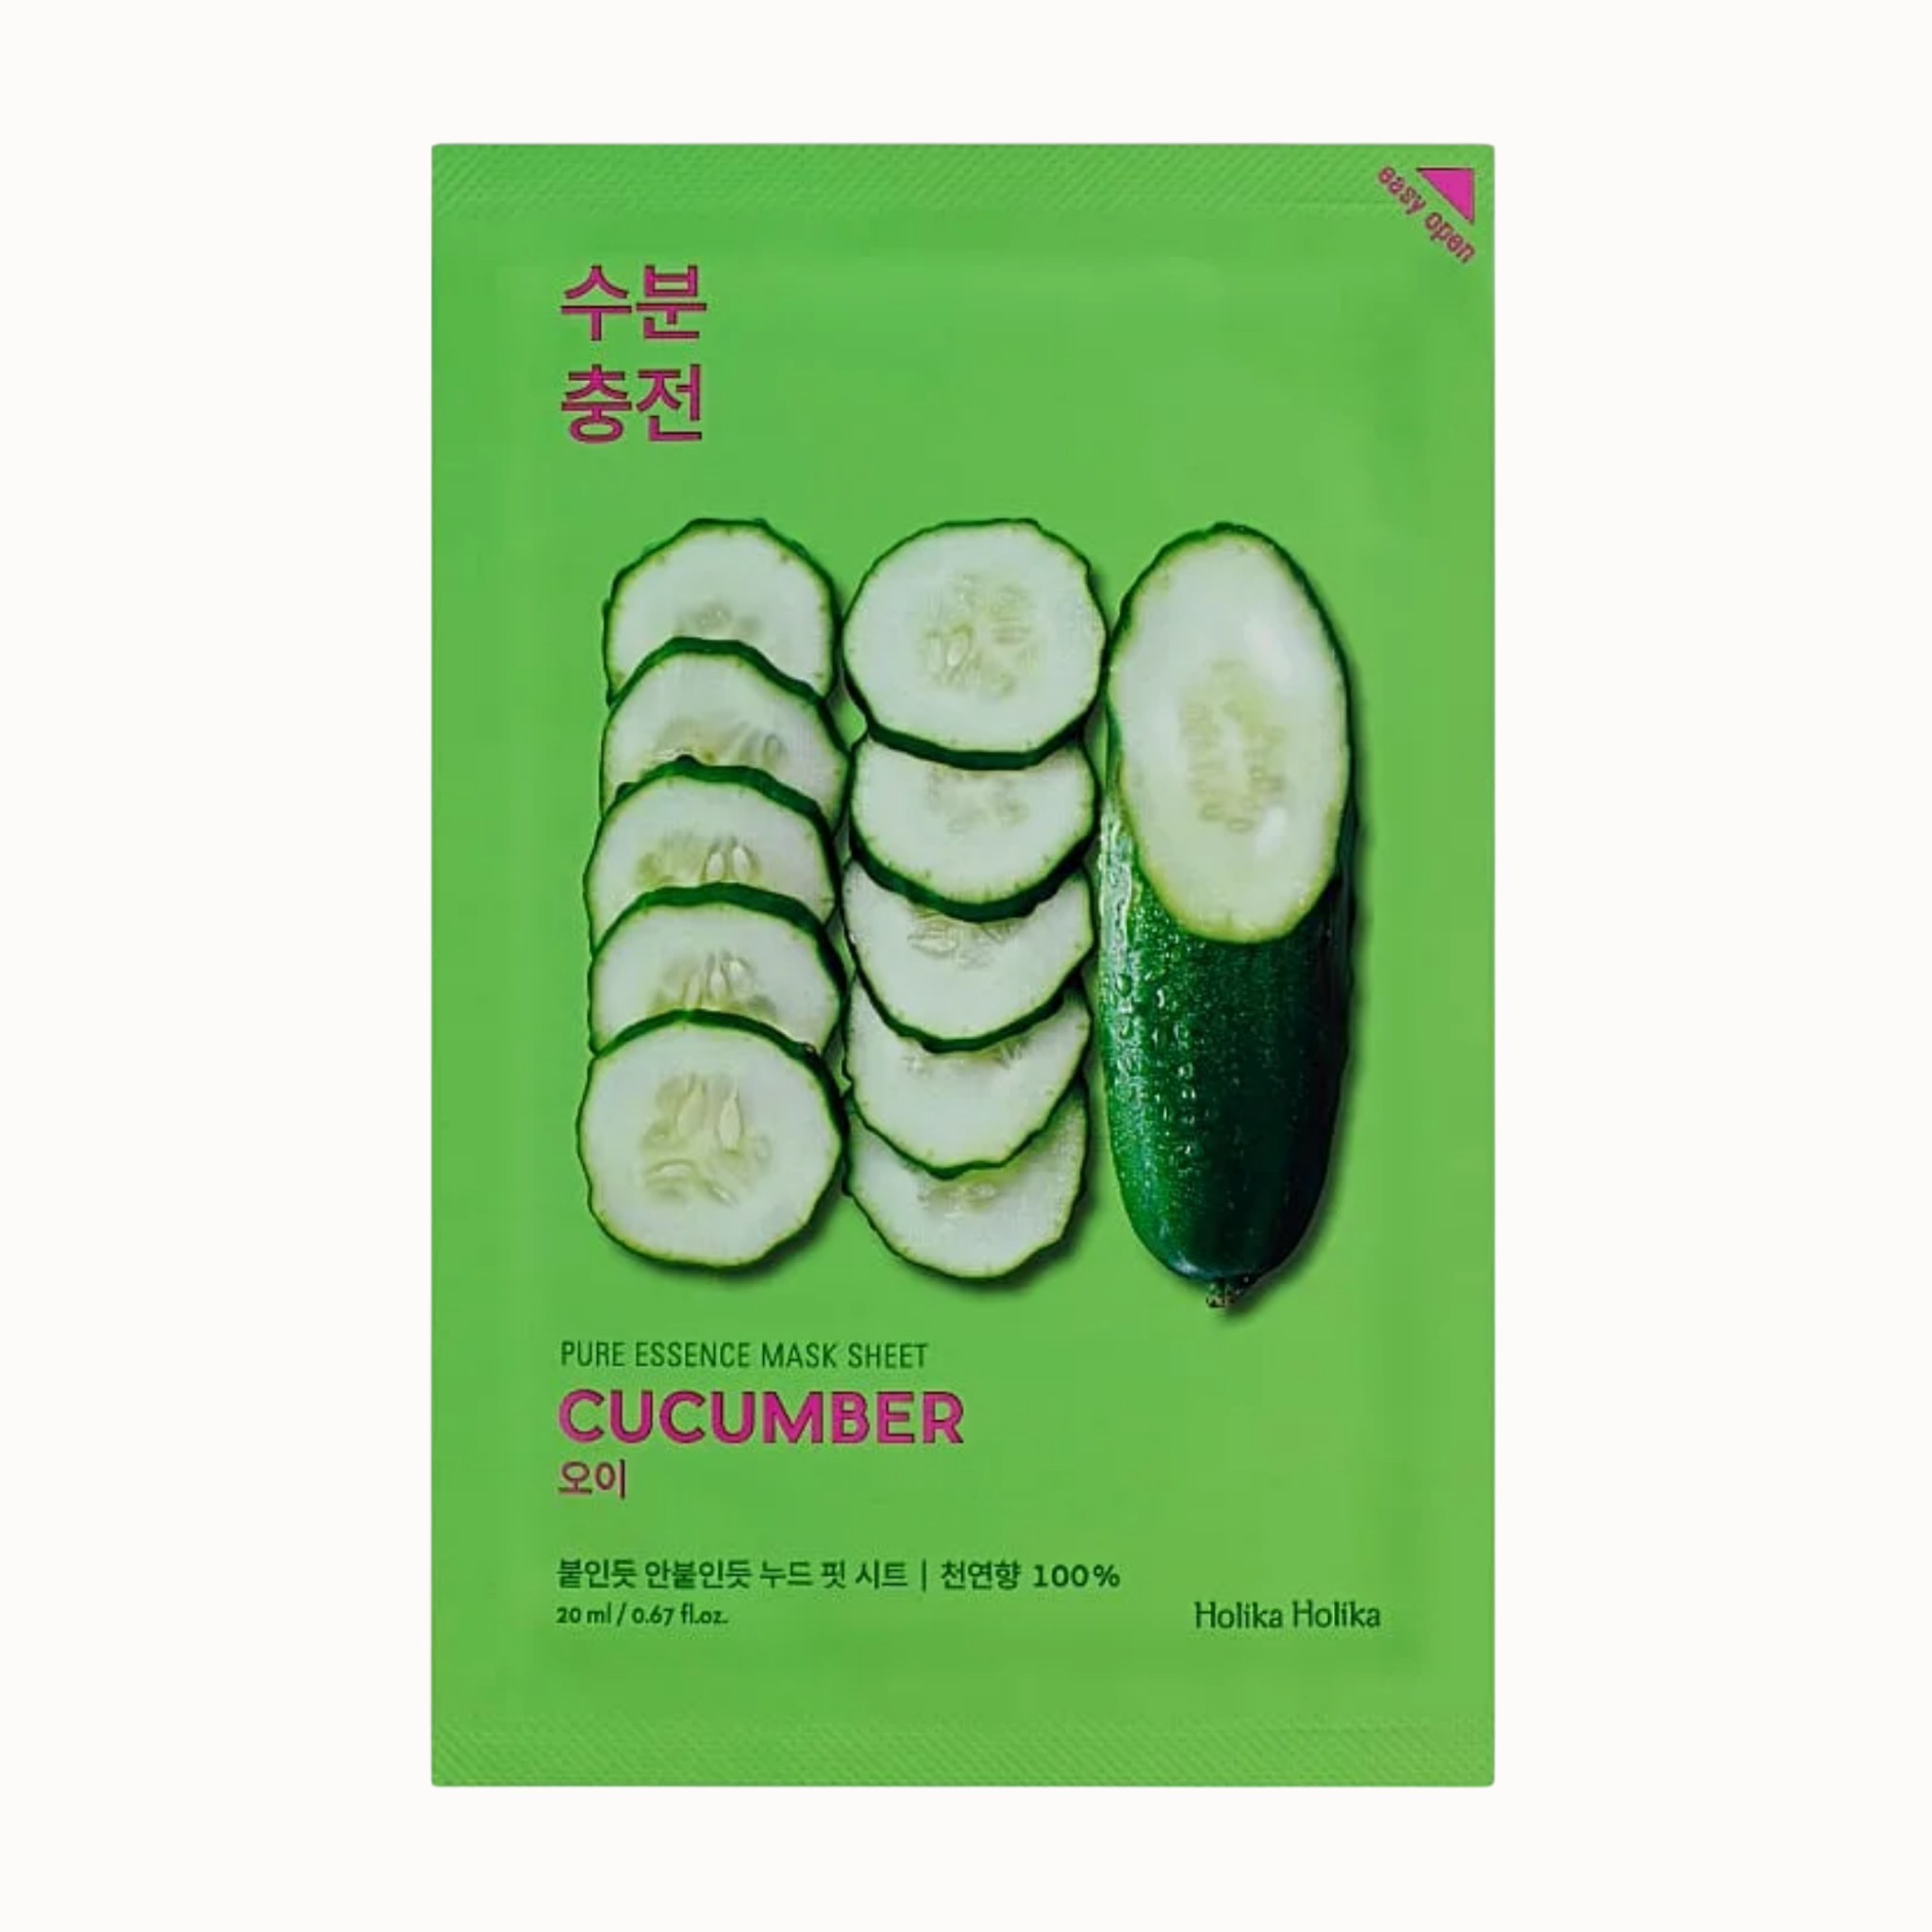 CUCUMBER PURE ESSENCE MASK SHEET